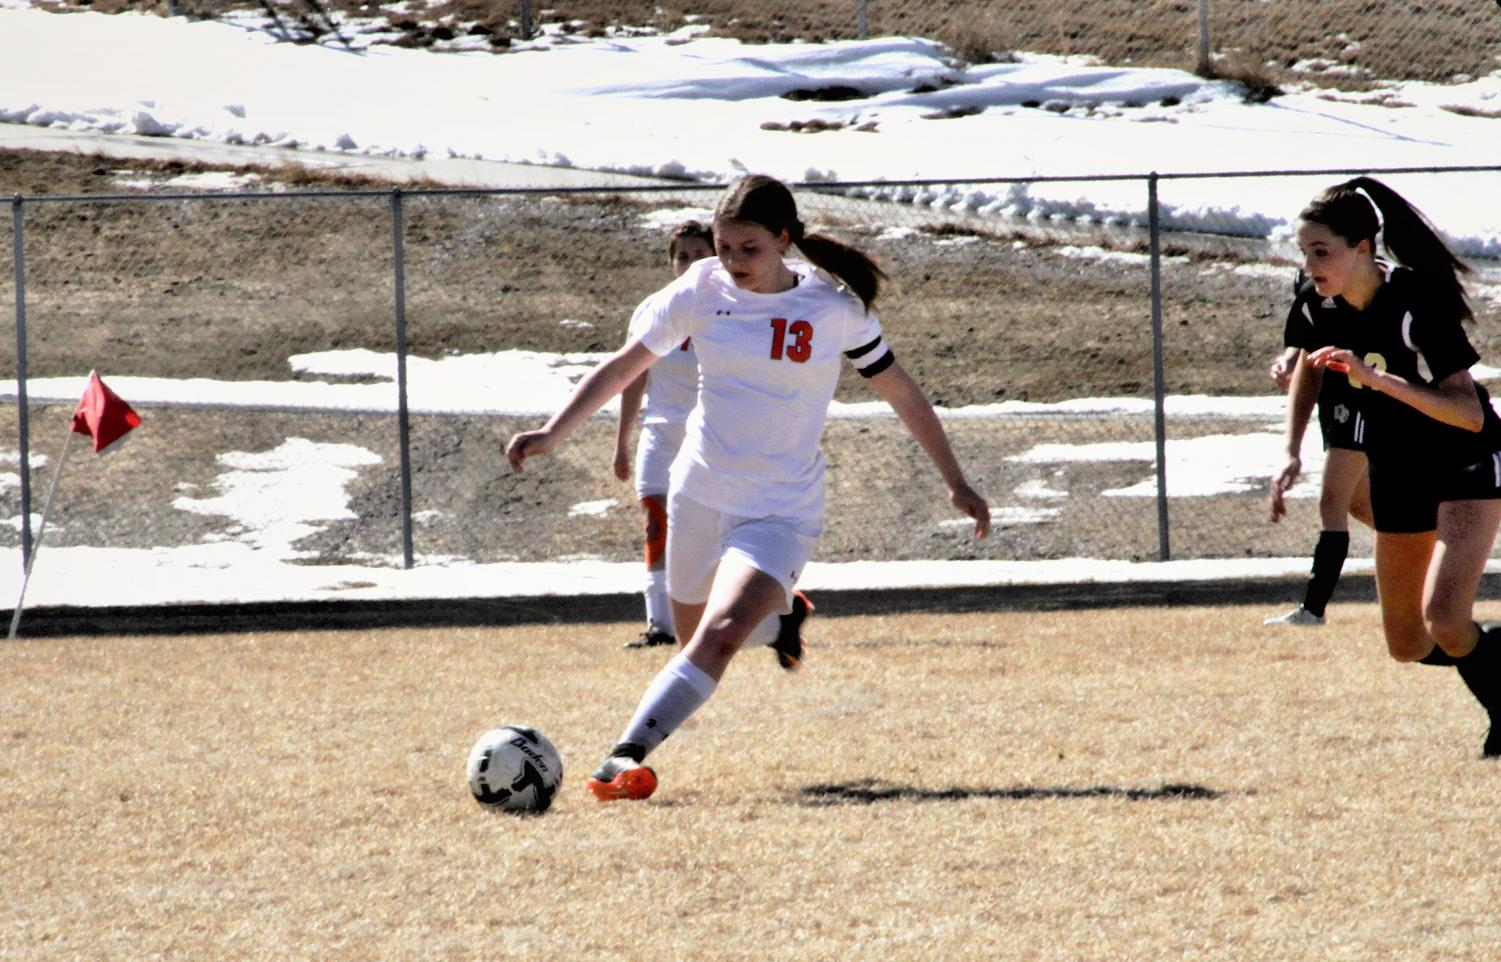 Junior Michele Wagner looks to kick the ball in the first game of the season Saturday, March 16, against Buffalo.